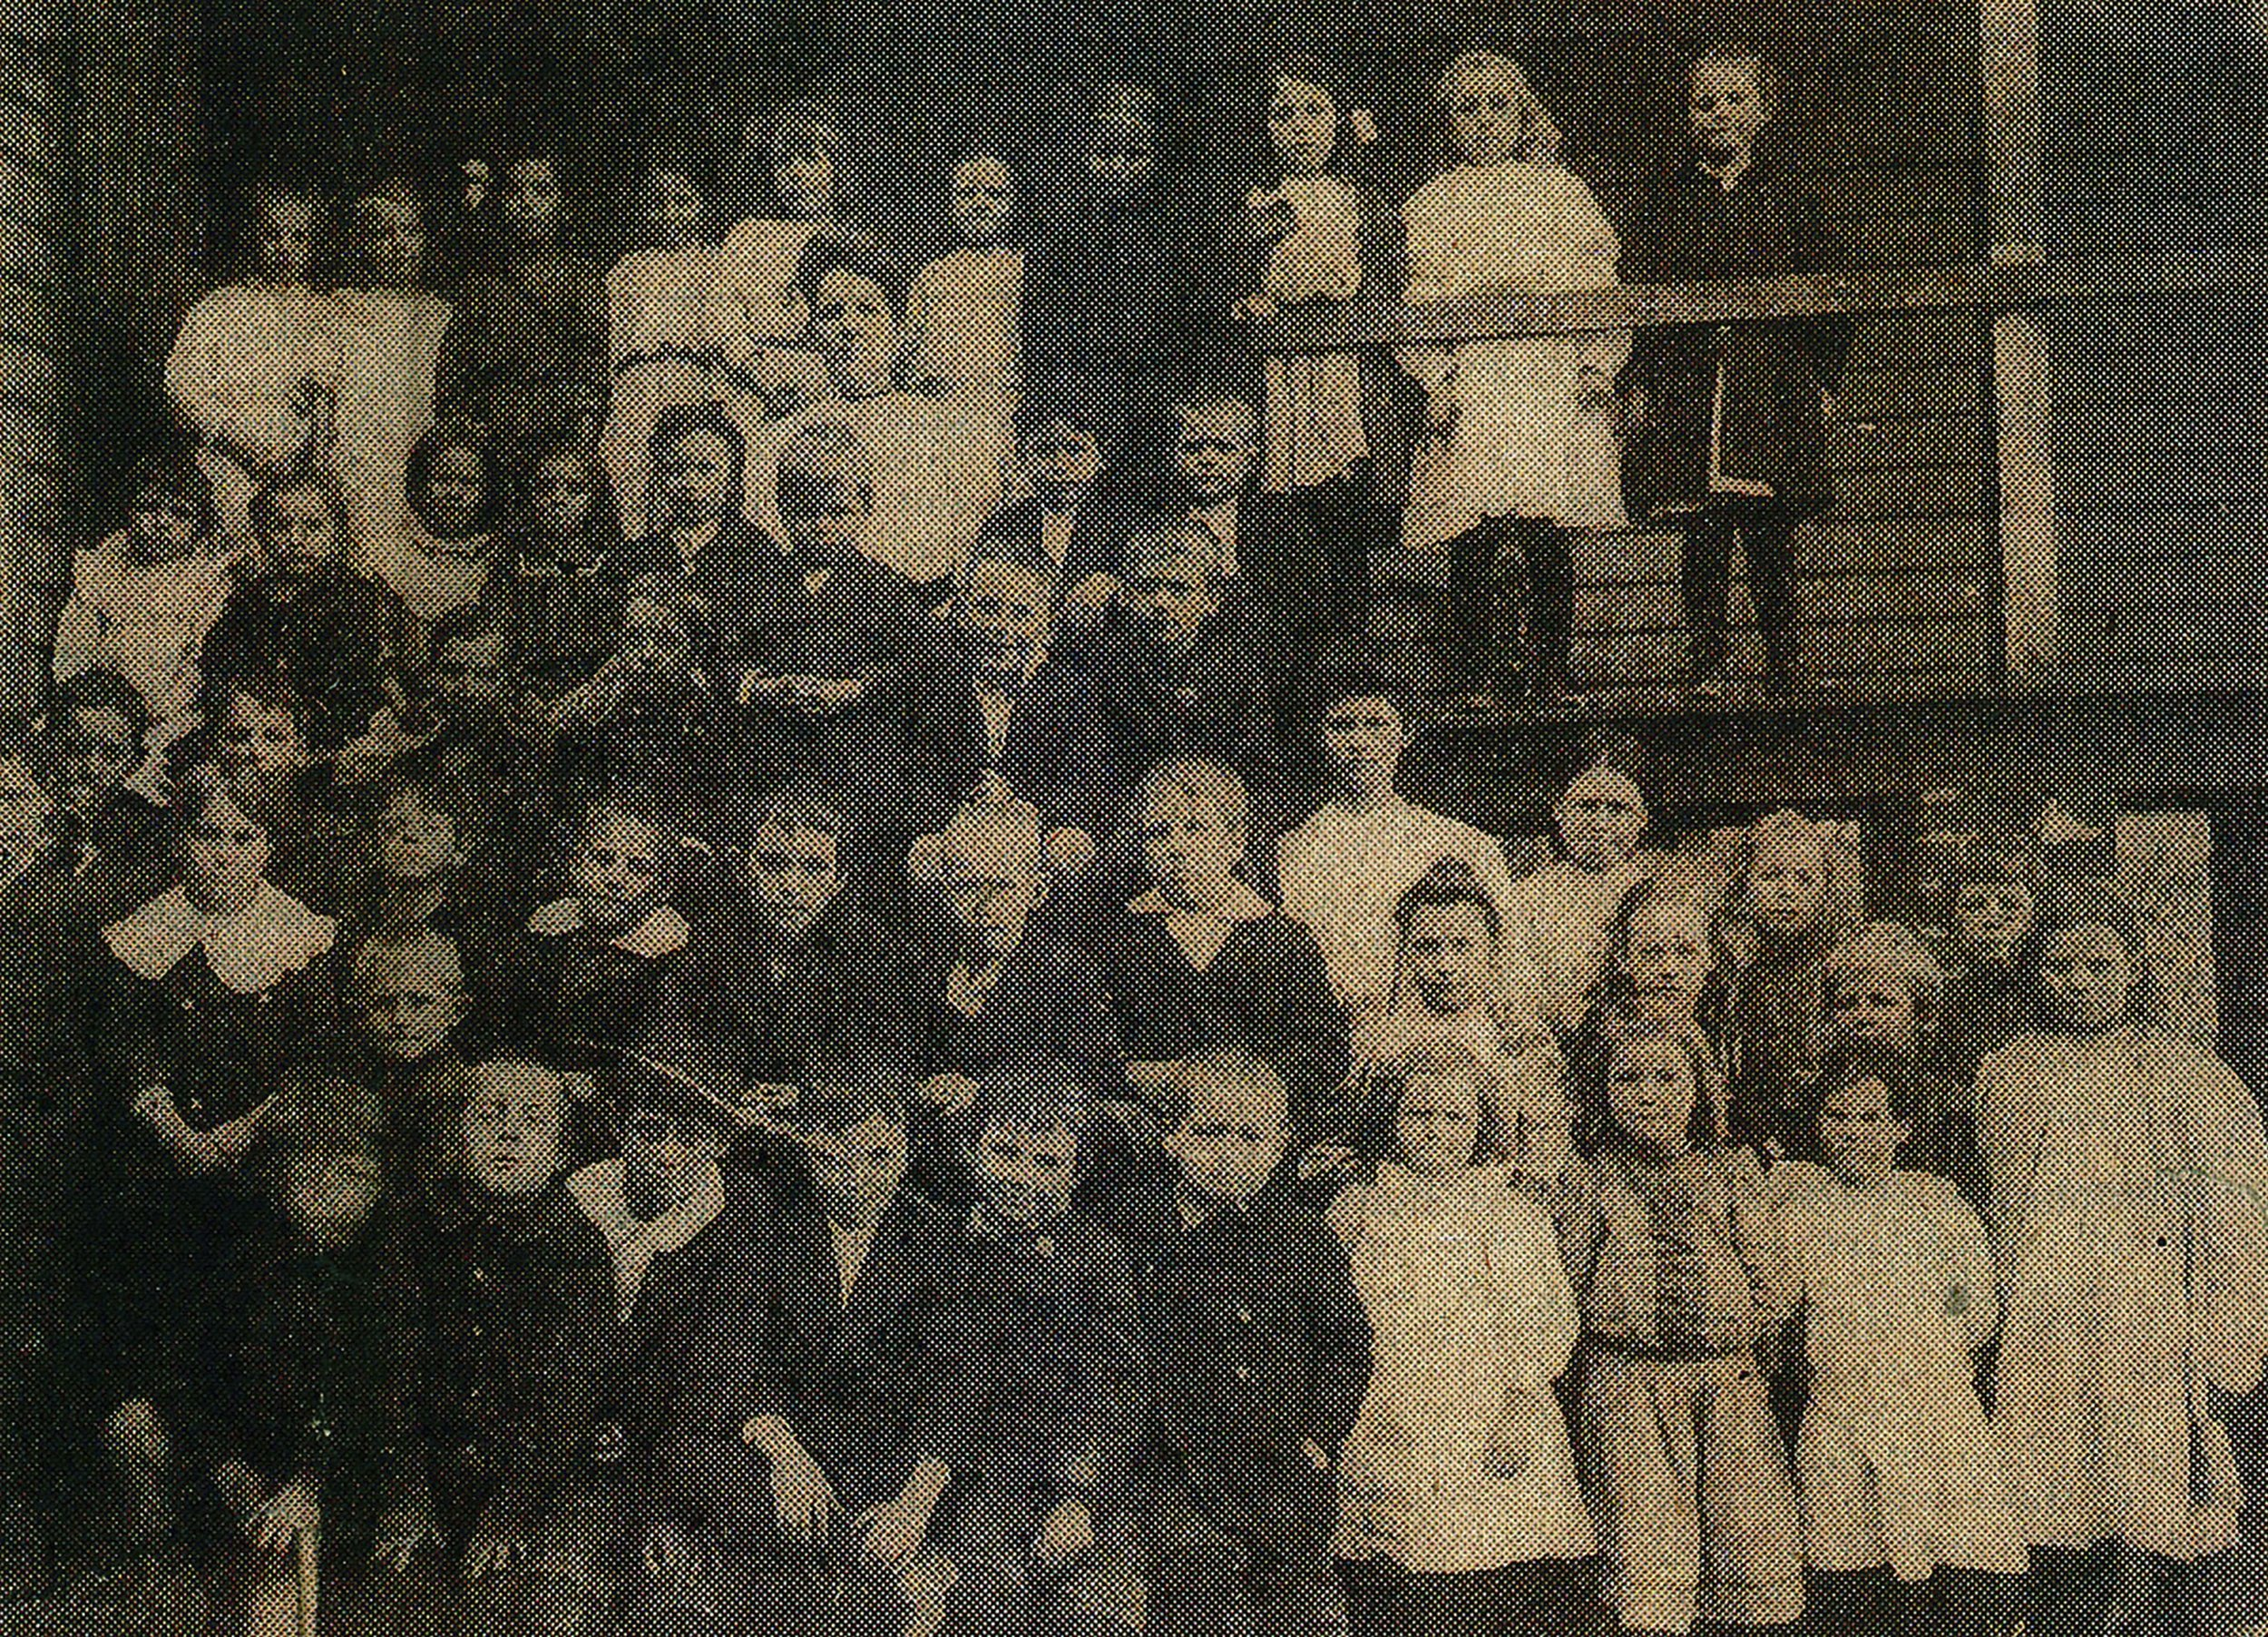 The Little Red Schoolhouse, found image on a local newspaper (original image circa 1907), 2015